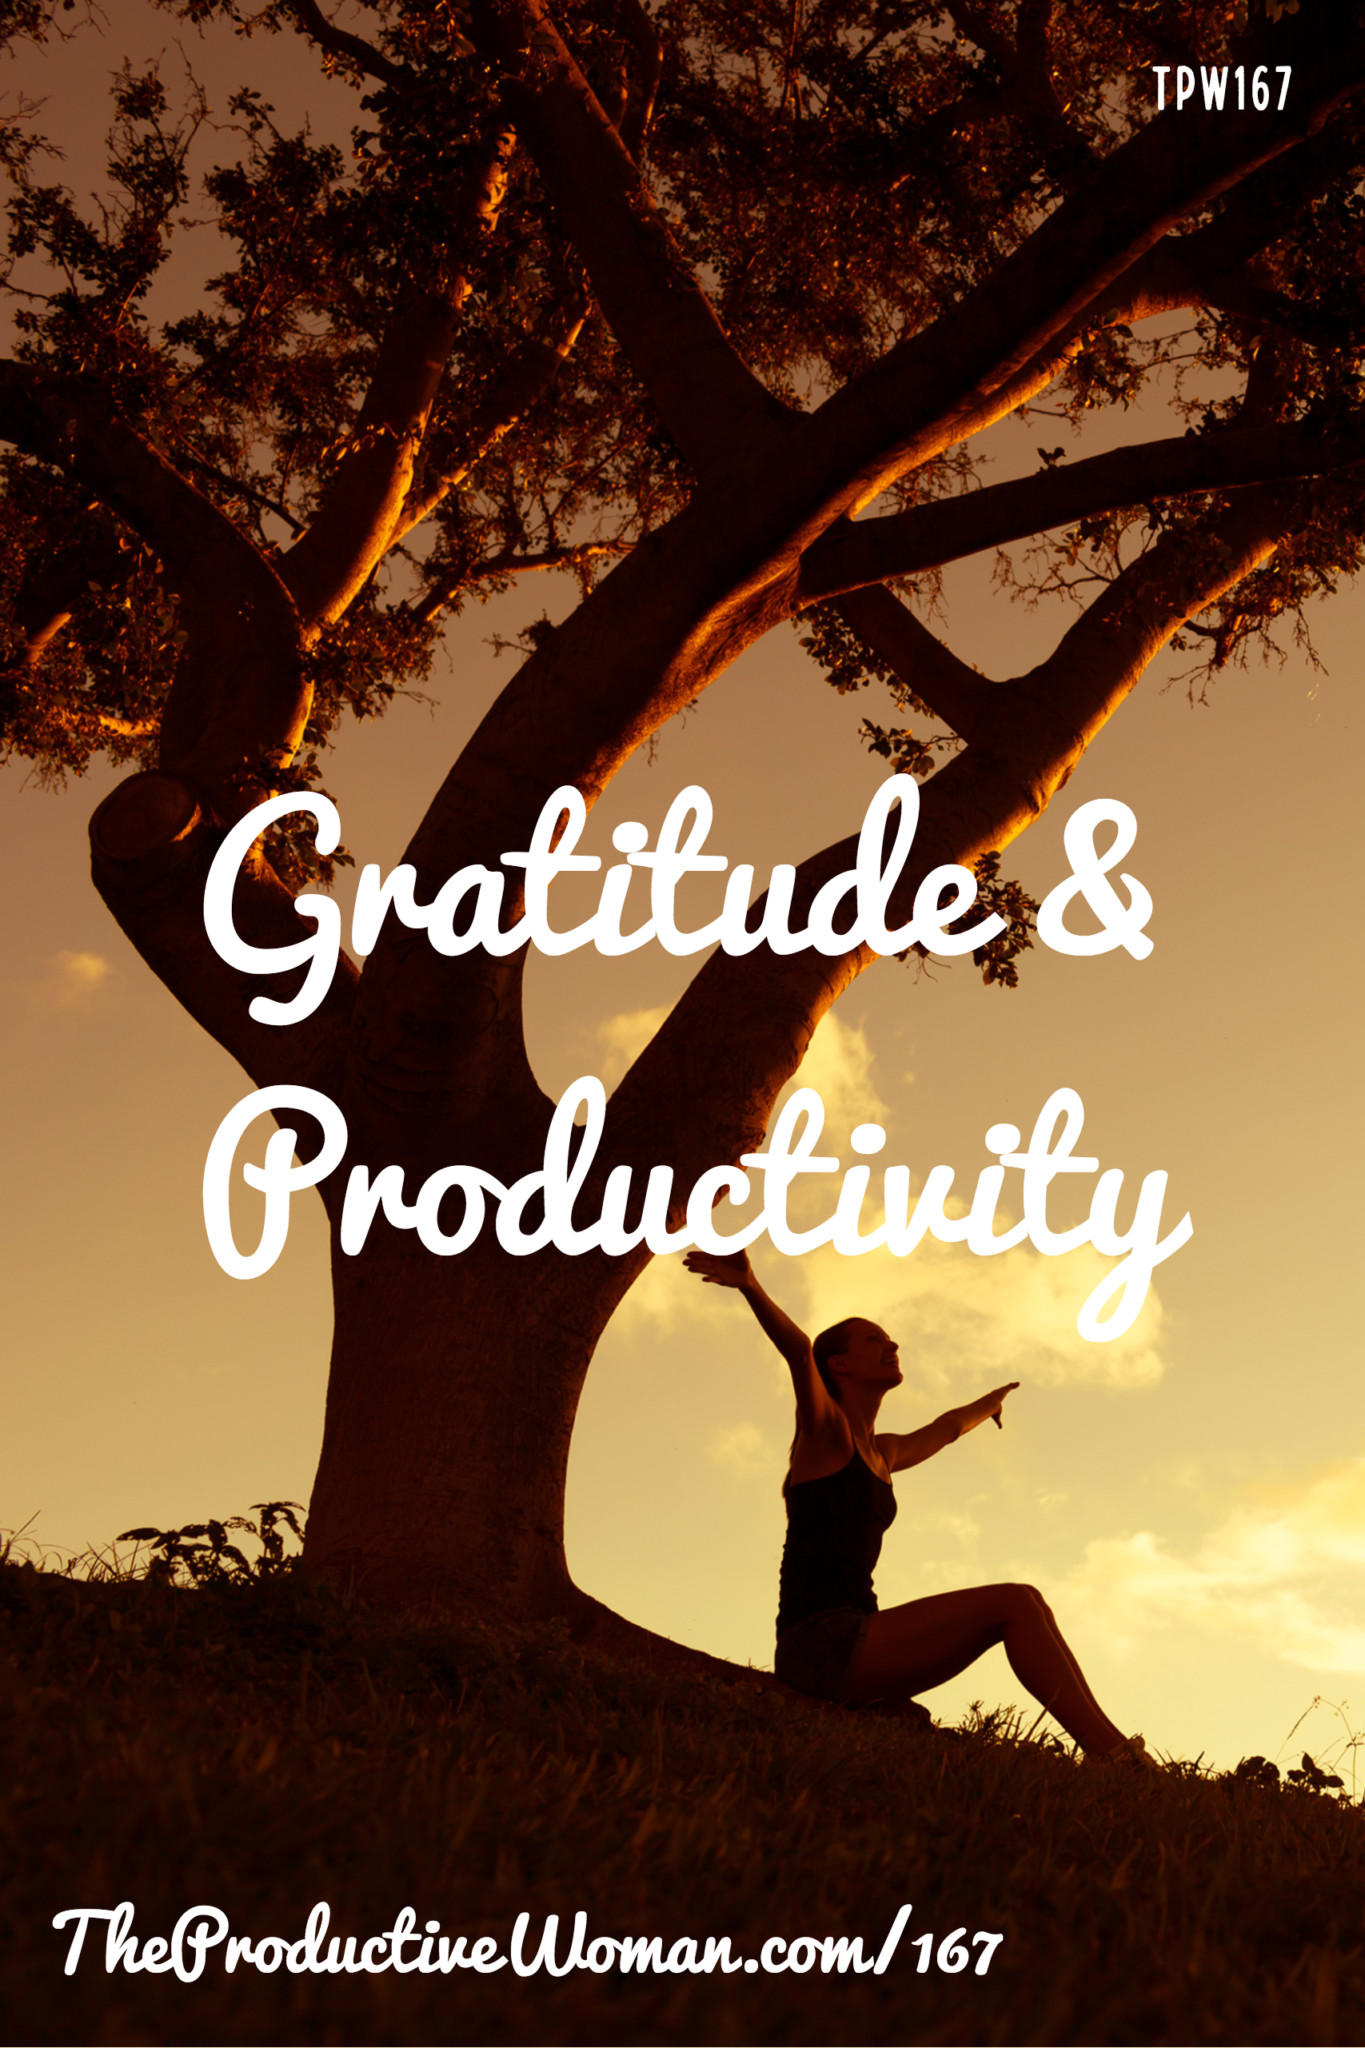 As we're entering the holiday season, it's a good time to give thought to how gratitude can affect ourproductivity. In episode 167 of The Productive Woman we talk about that, and I share a few things I'm grateful for. For more, visit TheProductiveWoman.com/167.